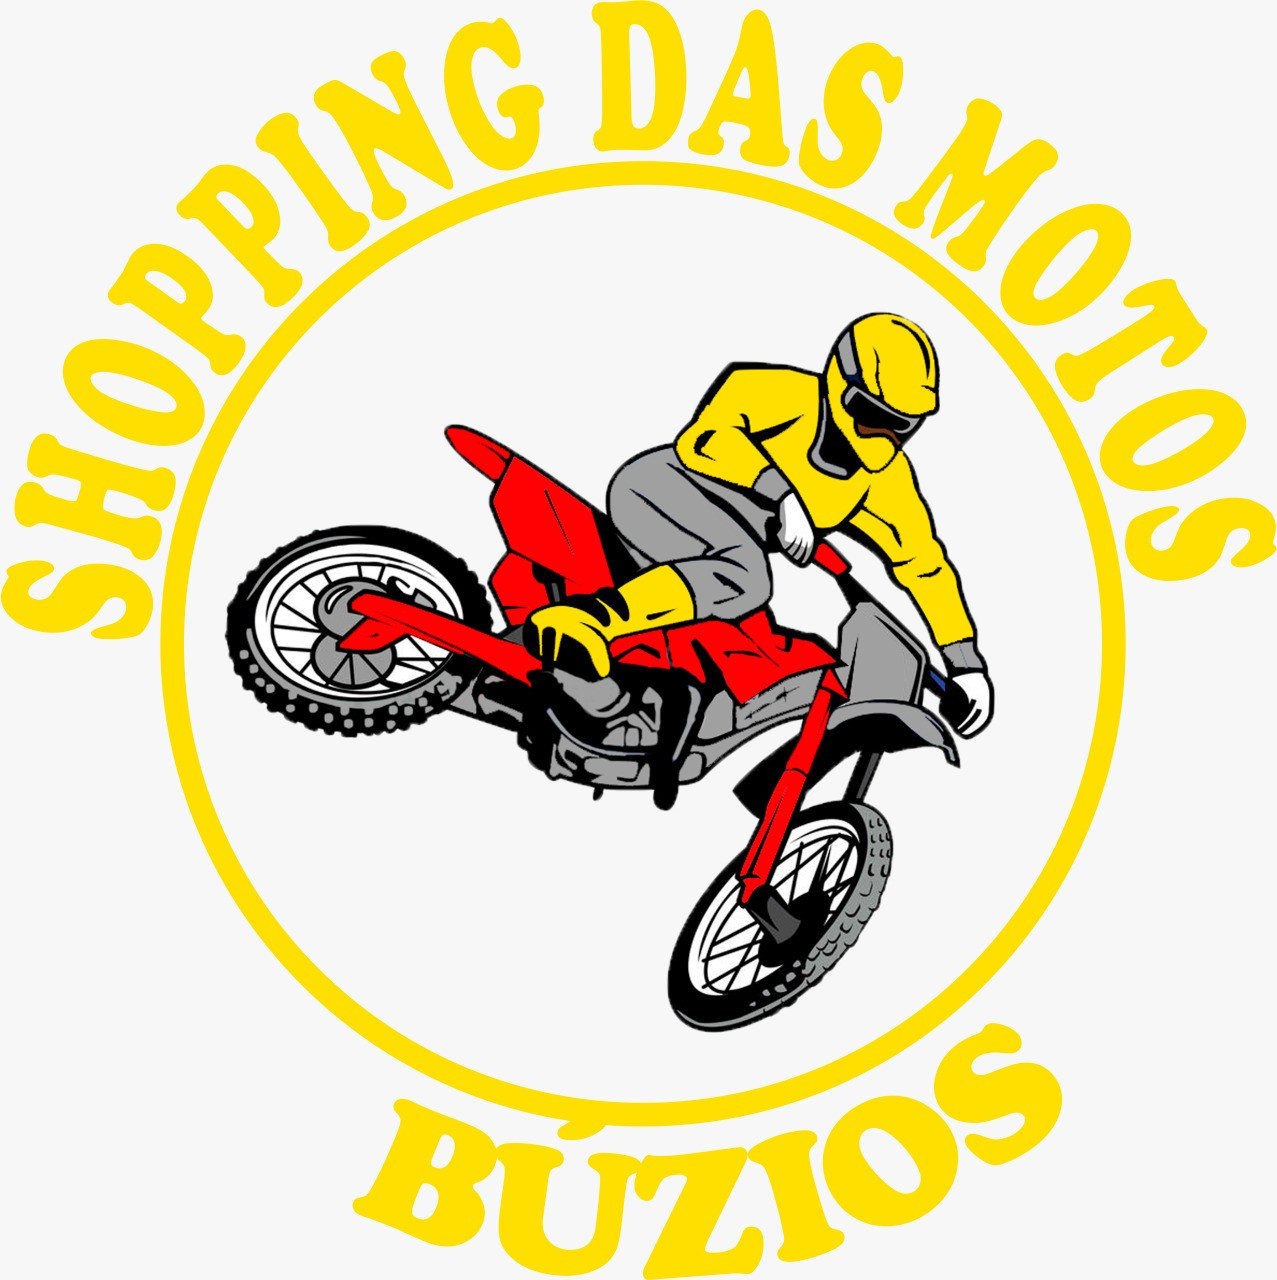 Shopping das motos